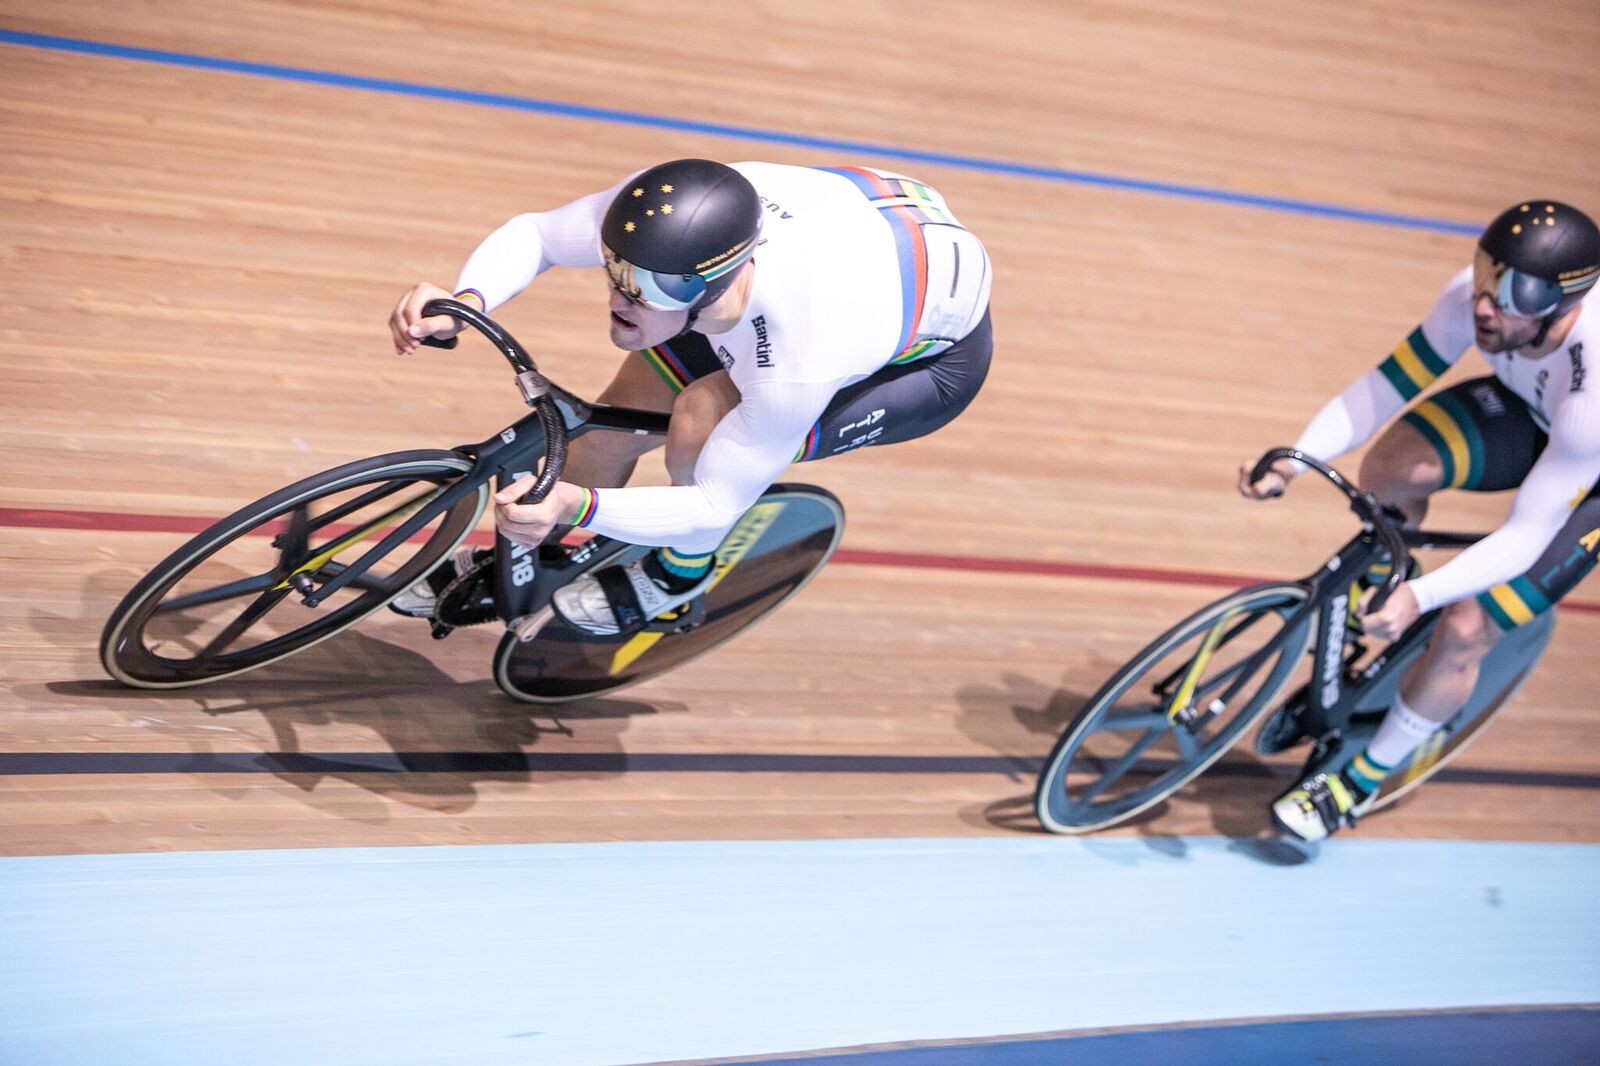 Australians Glaetzer and Morton among winners on day three of Oceania Track Cycling Championships